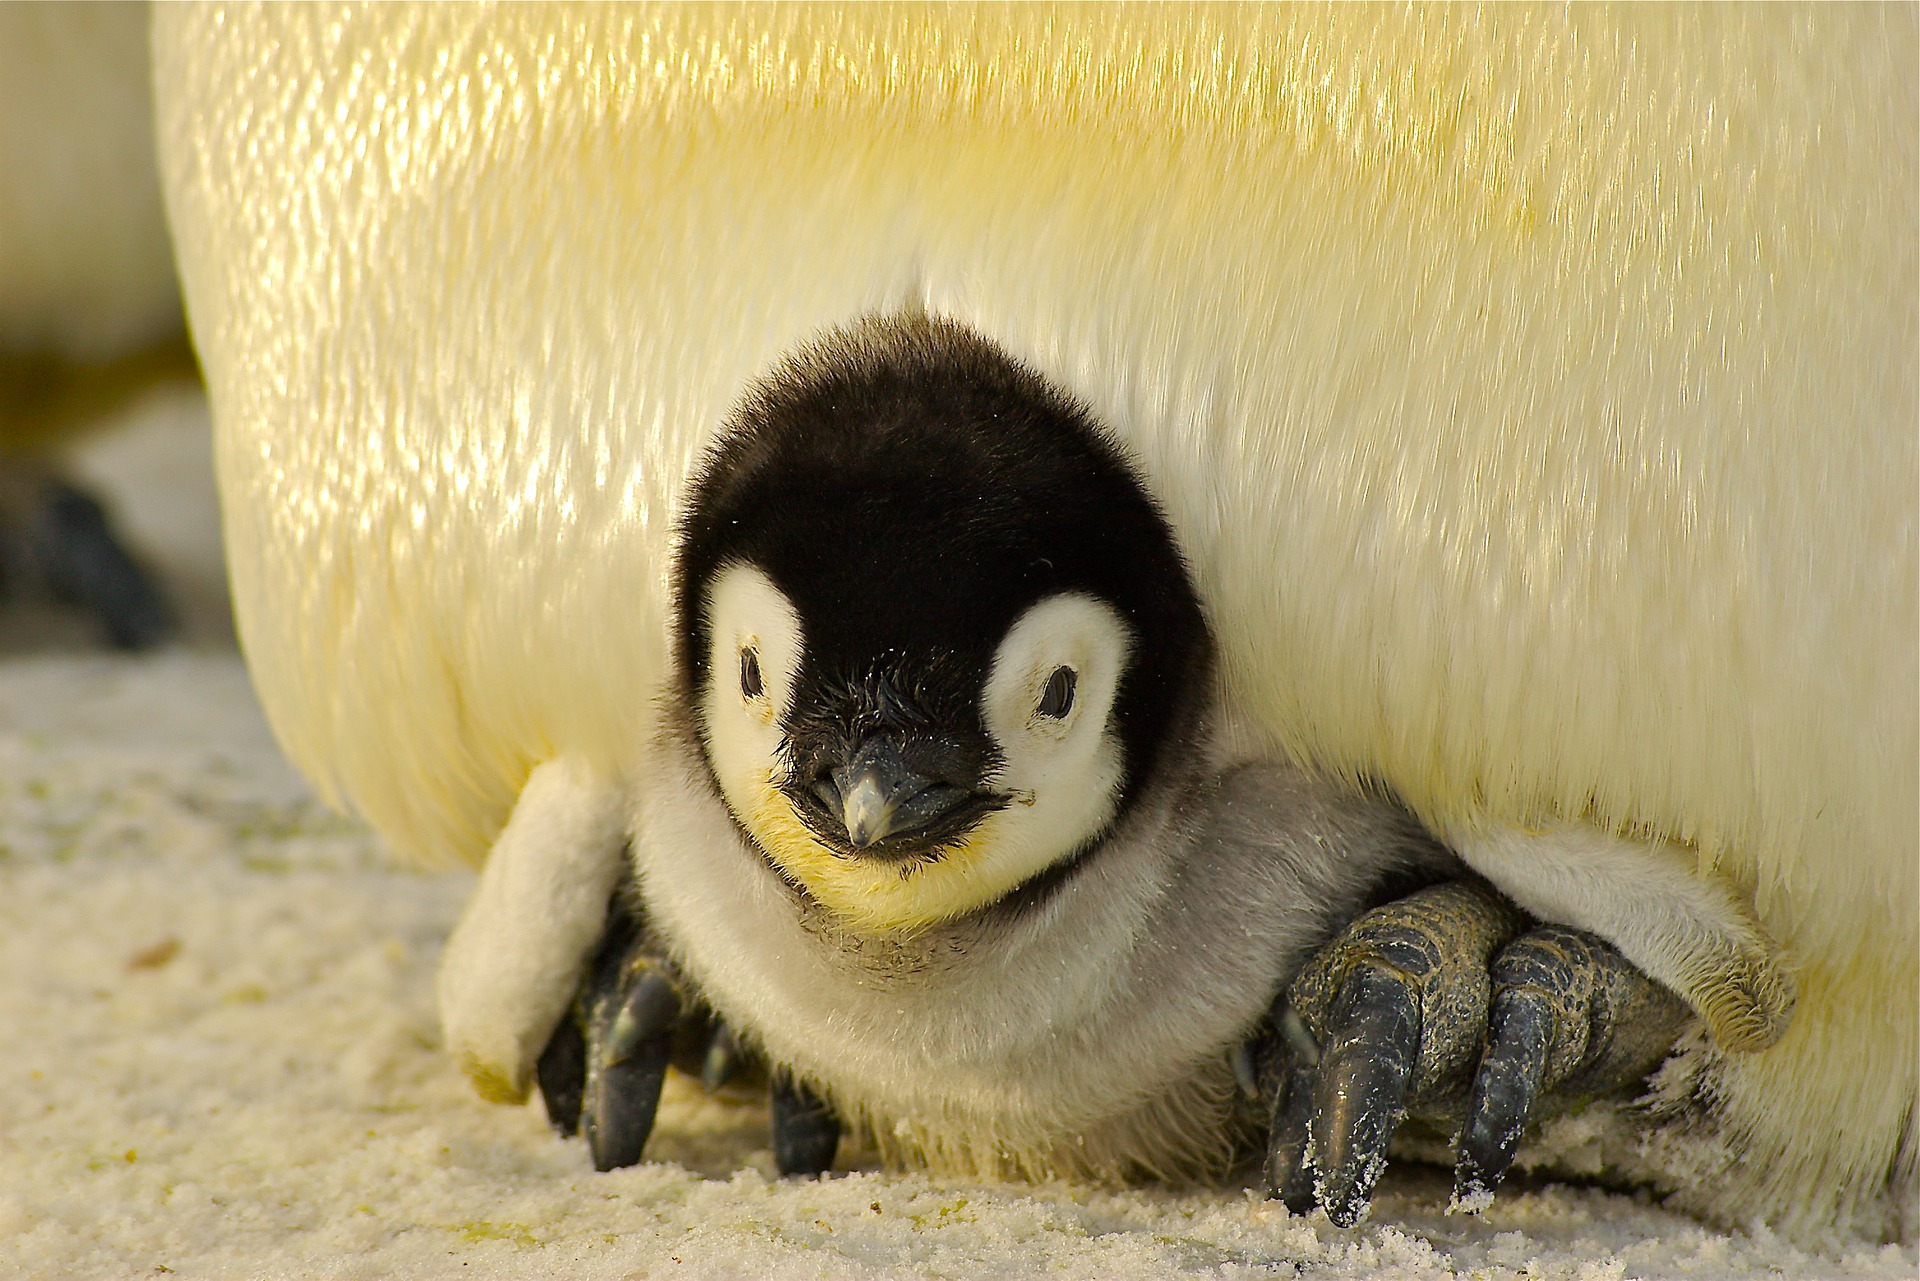 Penguins everywhere: getting cozy with Linux